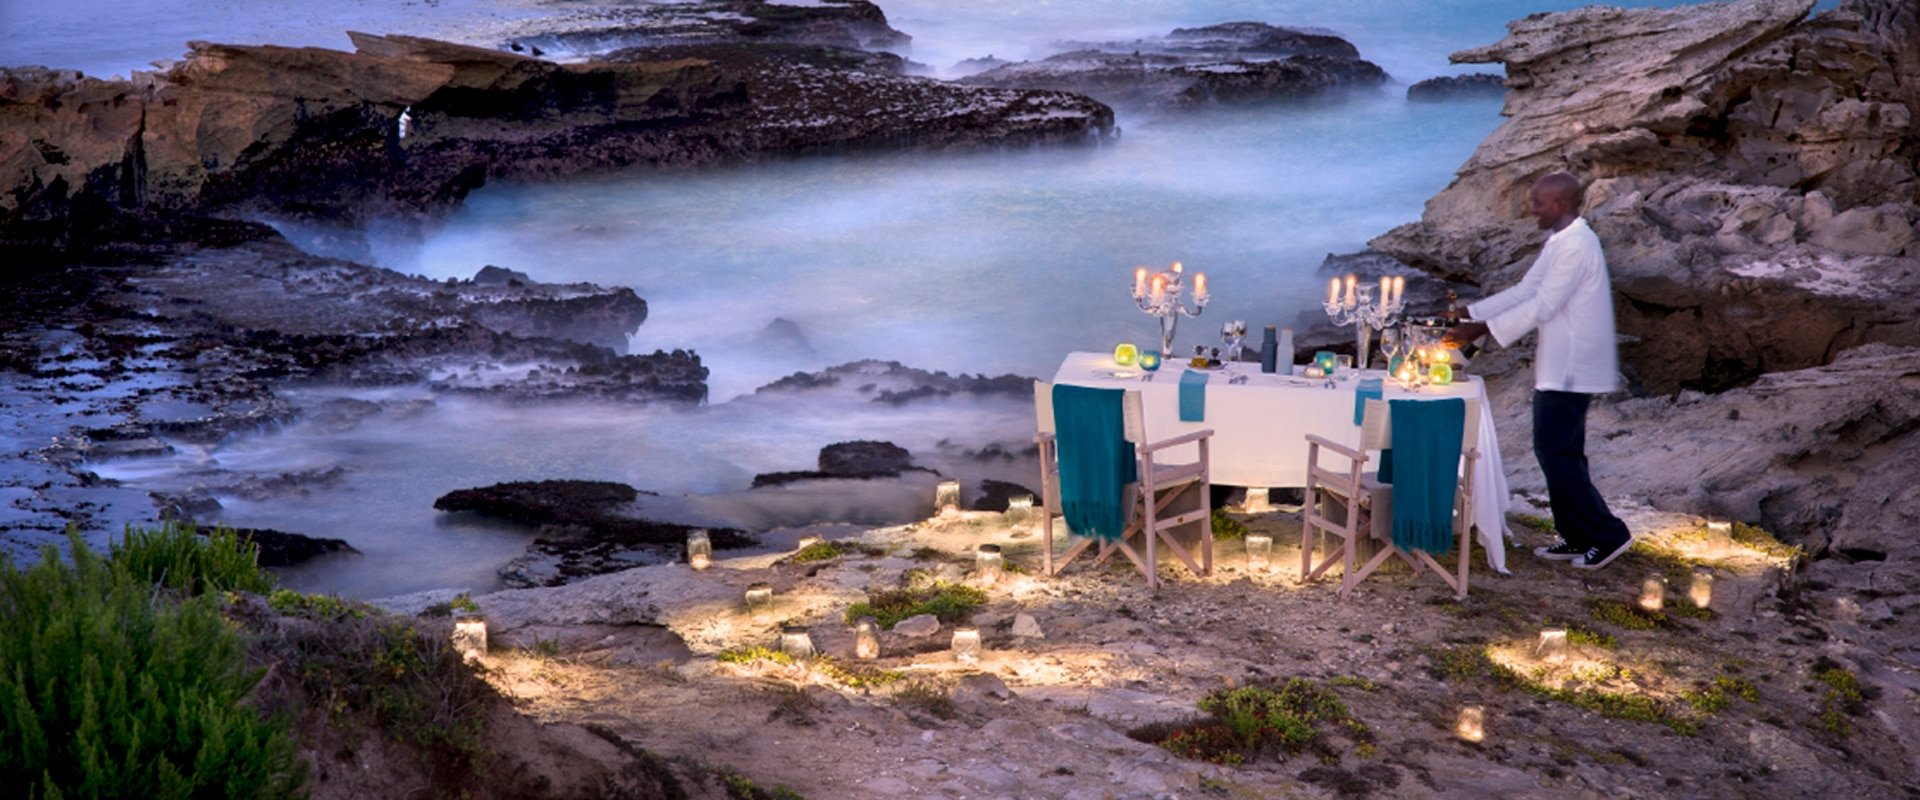 Feast in private on the beach in a nature reserve next to the alluring ocean